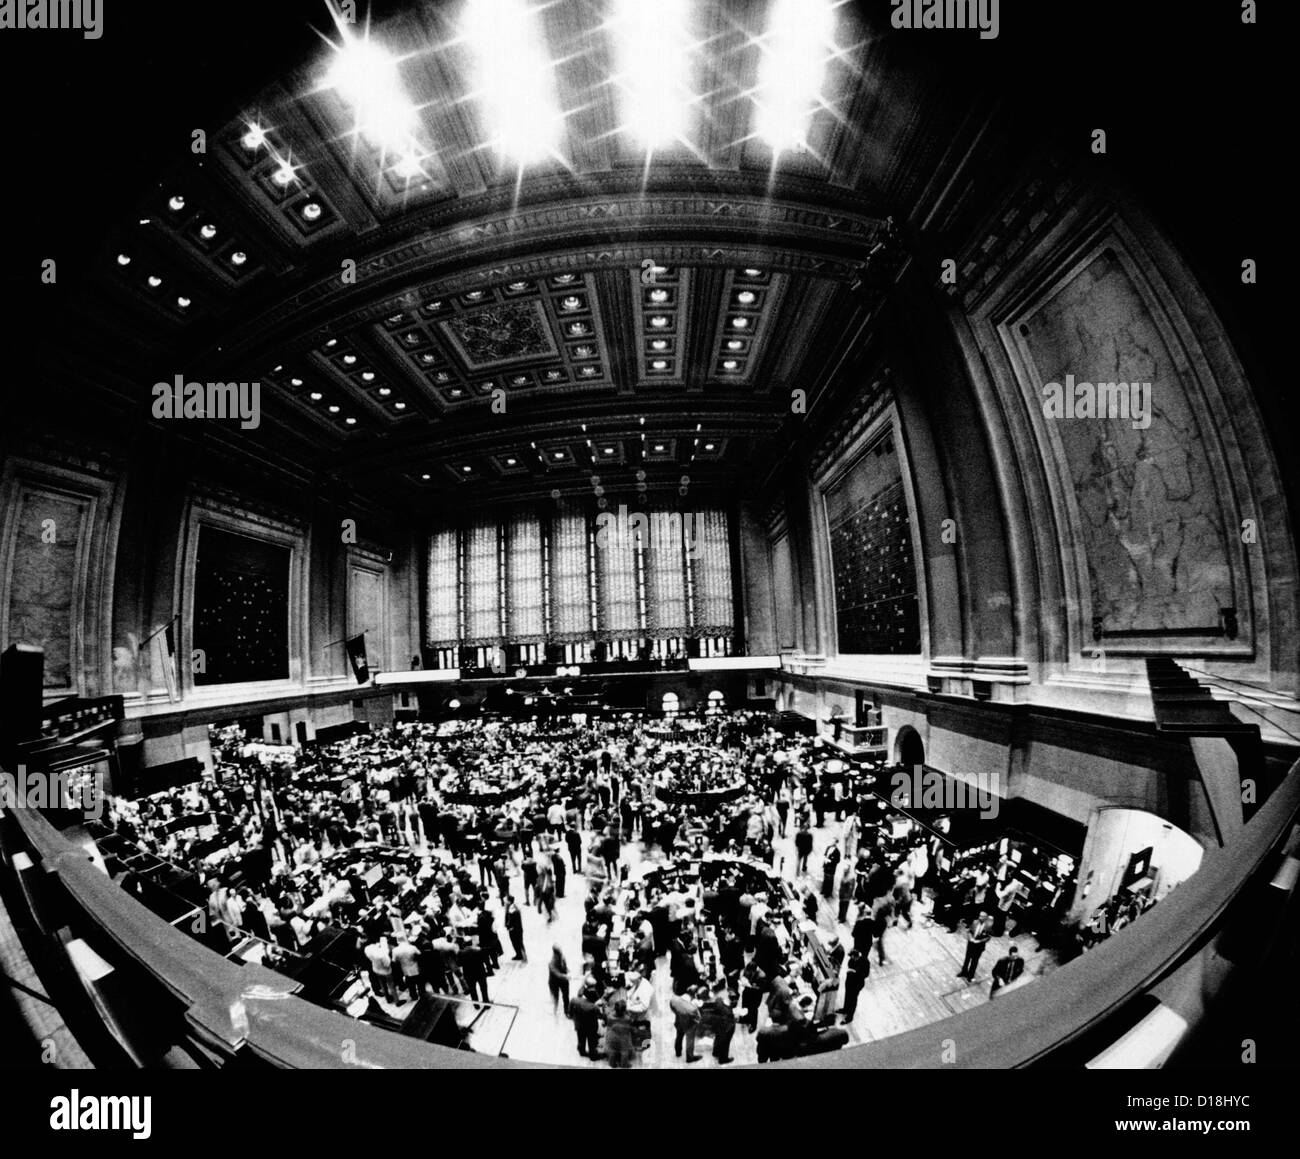 Fish Eye View Of The Trading Floor Of The New York Stock Exchange